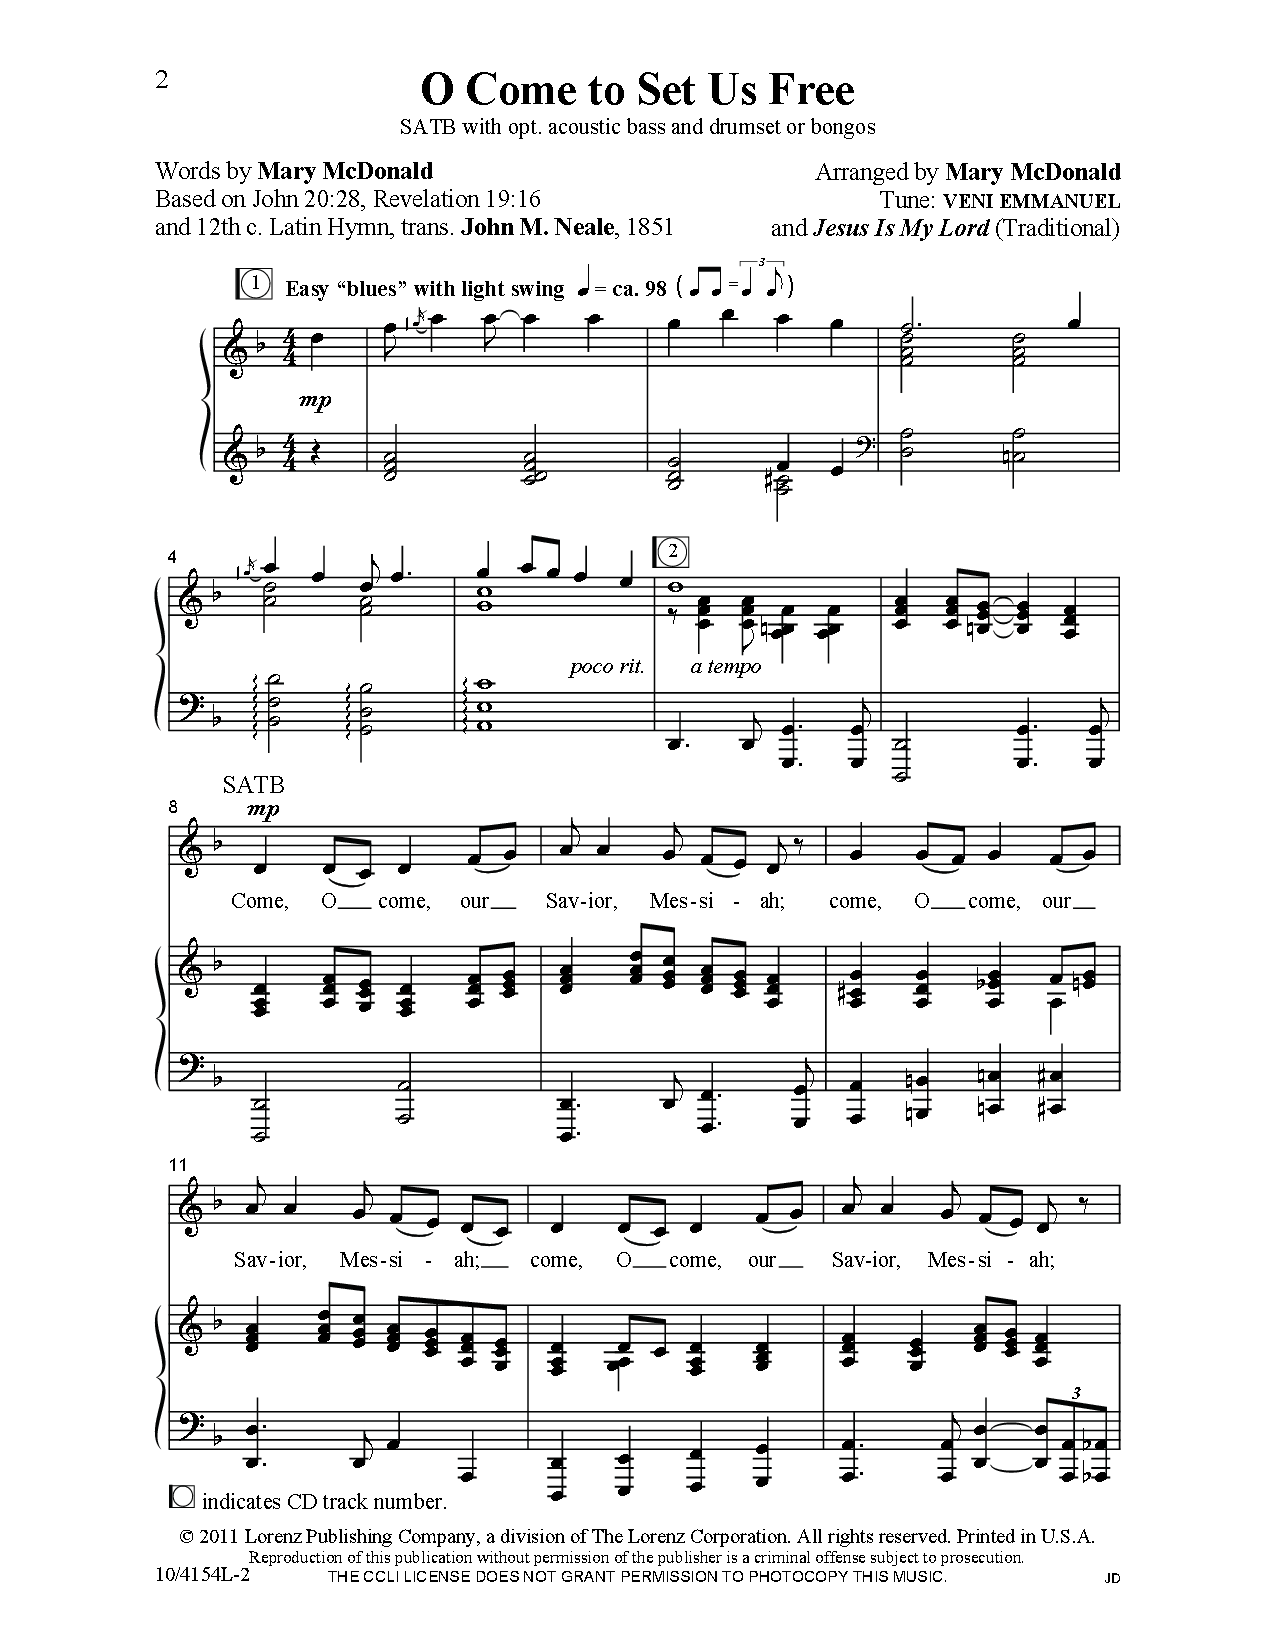 O Come To Set Us Free (SATB ) arr  Mary McDo | J W  Pepper Sheet